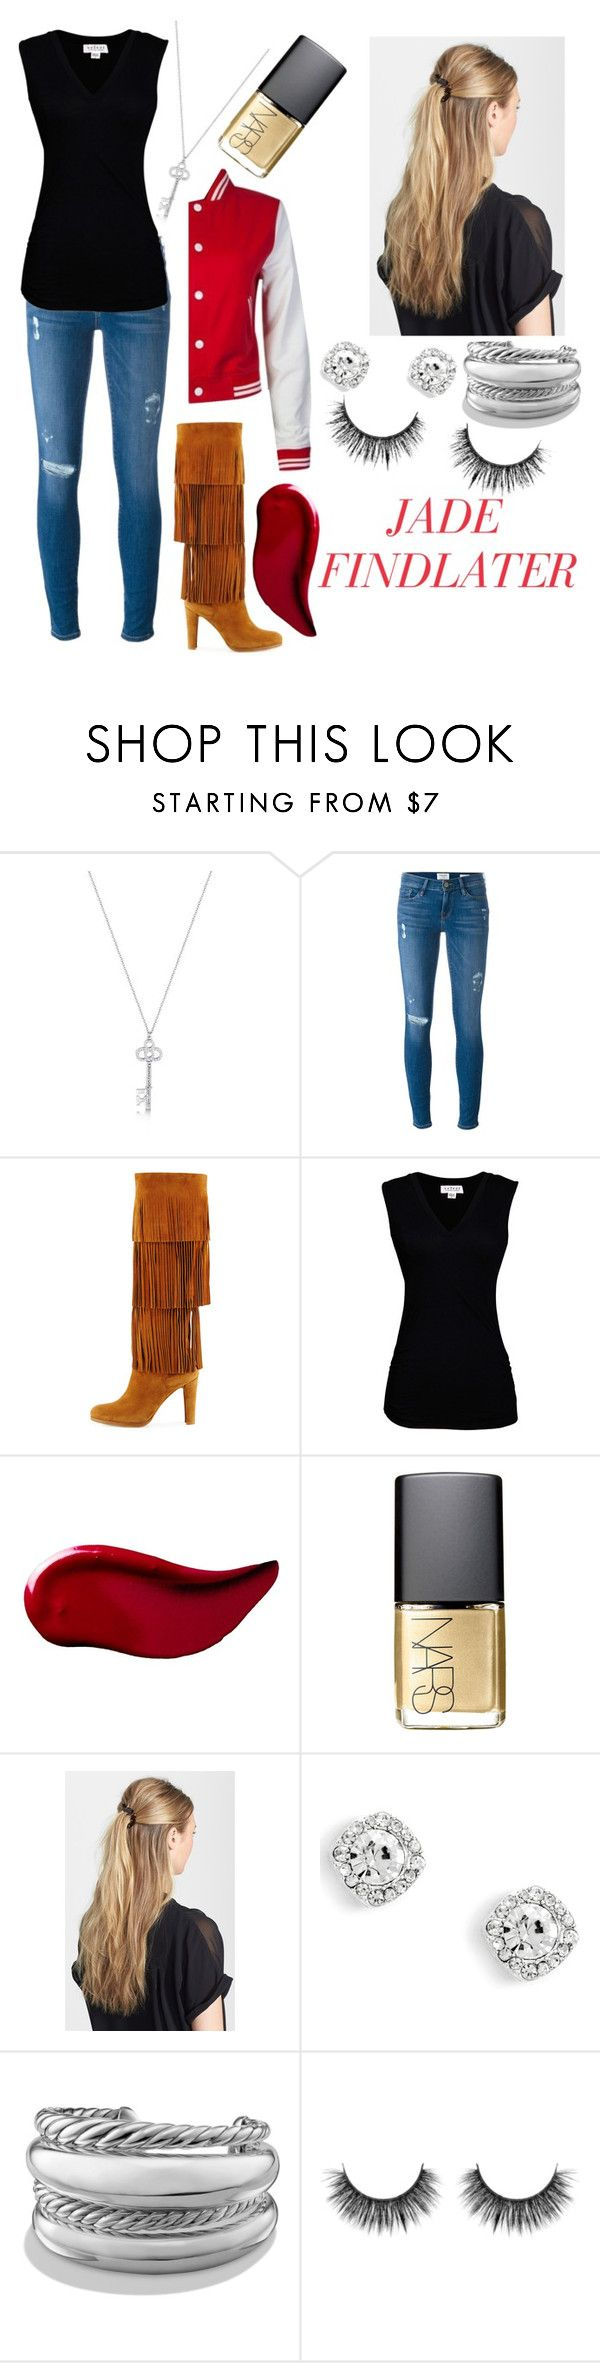 """""""J.F"""" by nowstop-emmatime on Polyvore featuring Frame Denim, Stuart Weitzman, Velvet by Graham & Spencer, Kat Von D, NARS Cosmetics, France Luxe and David Yurman"""